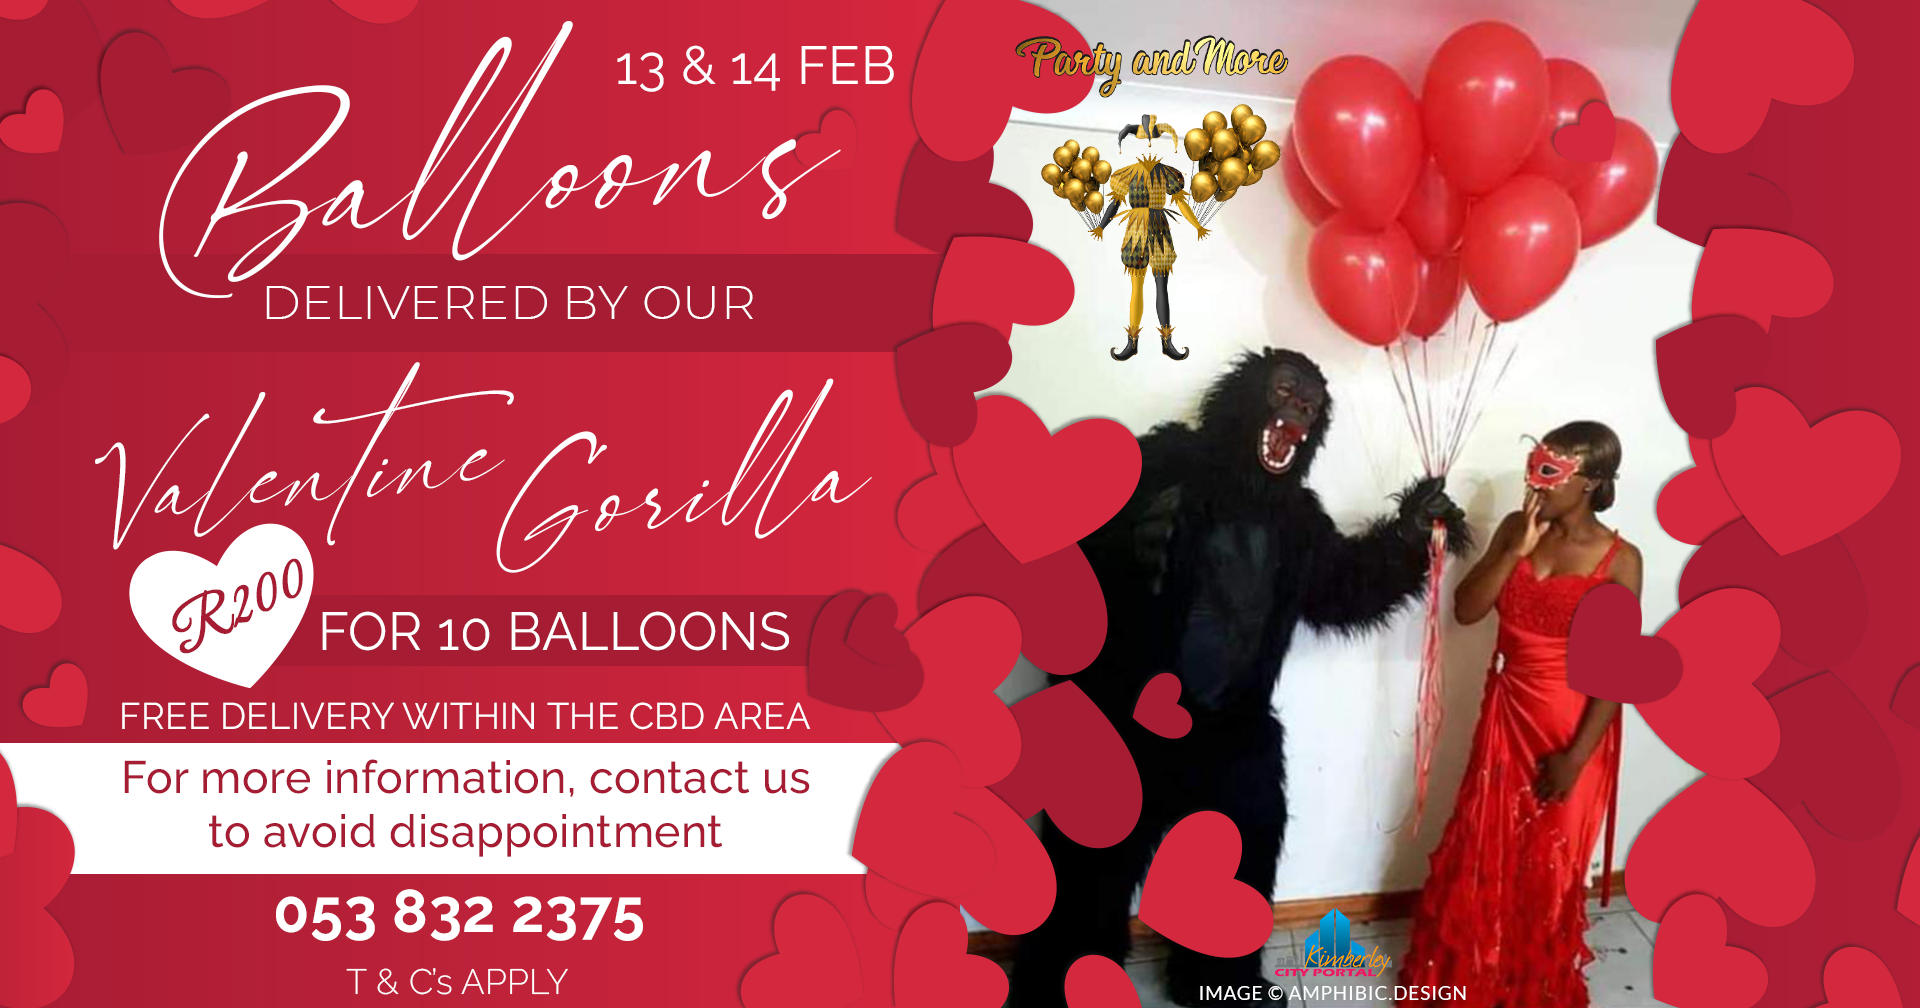 Party_and_More-KCP-SP-Gorilla_and_Balloons-Valentines_Day_2021-V1_00b